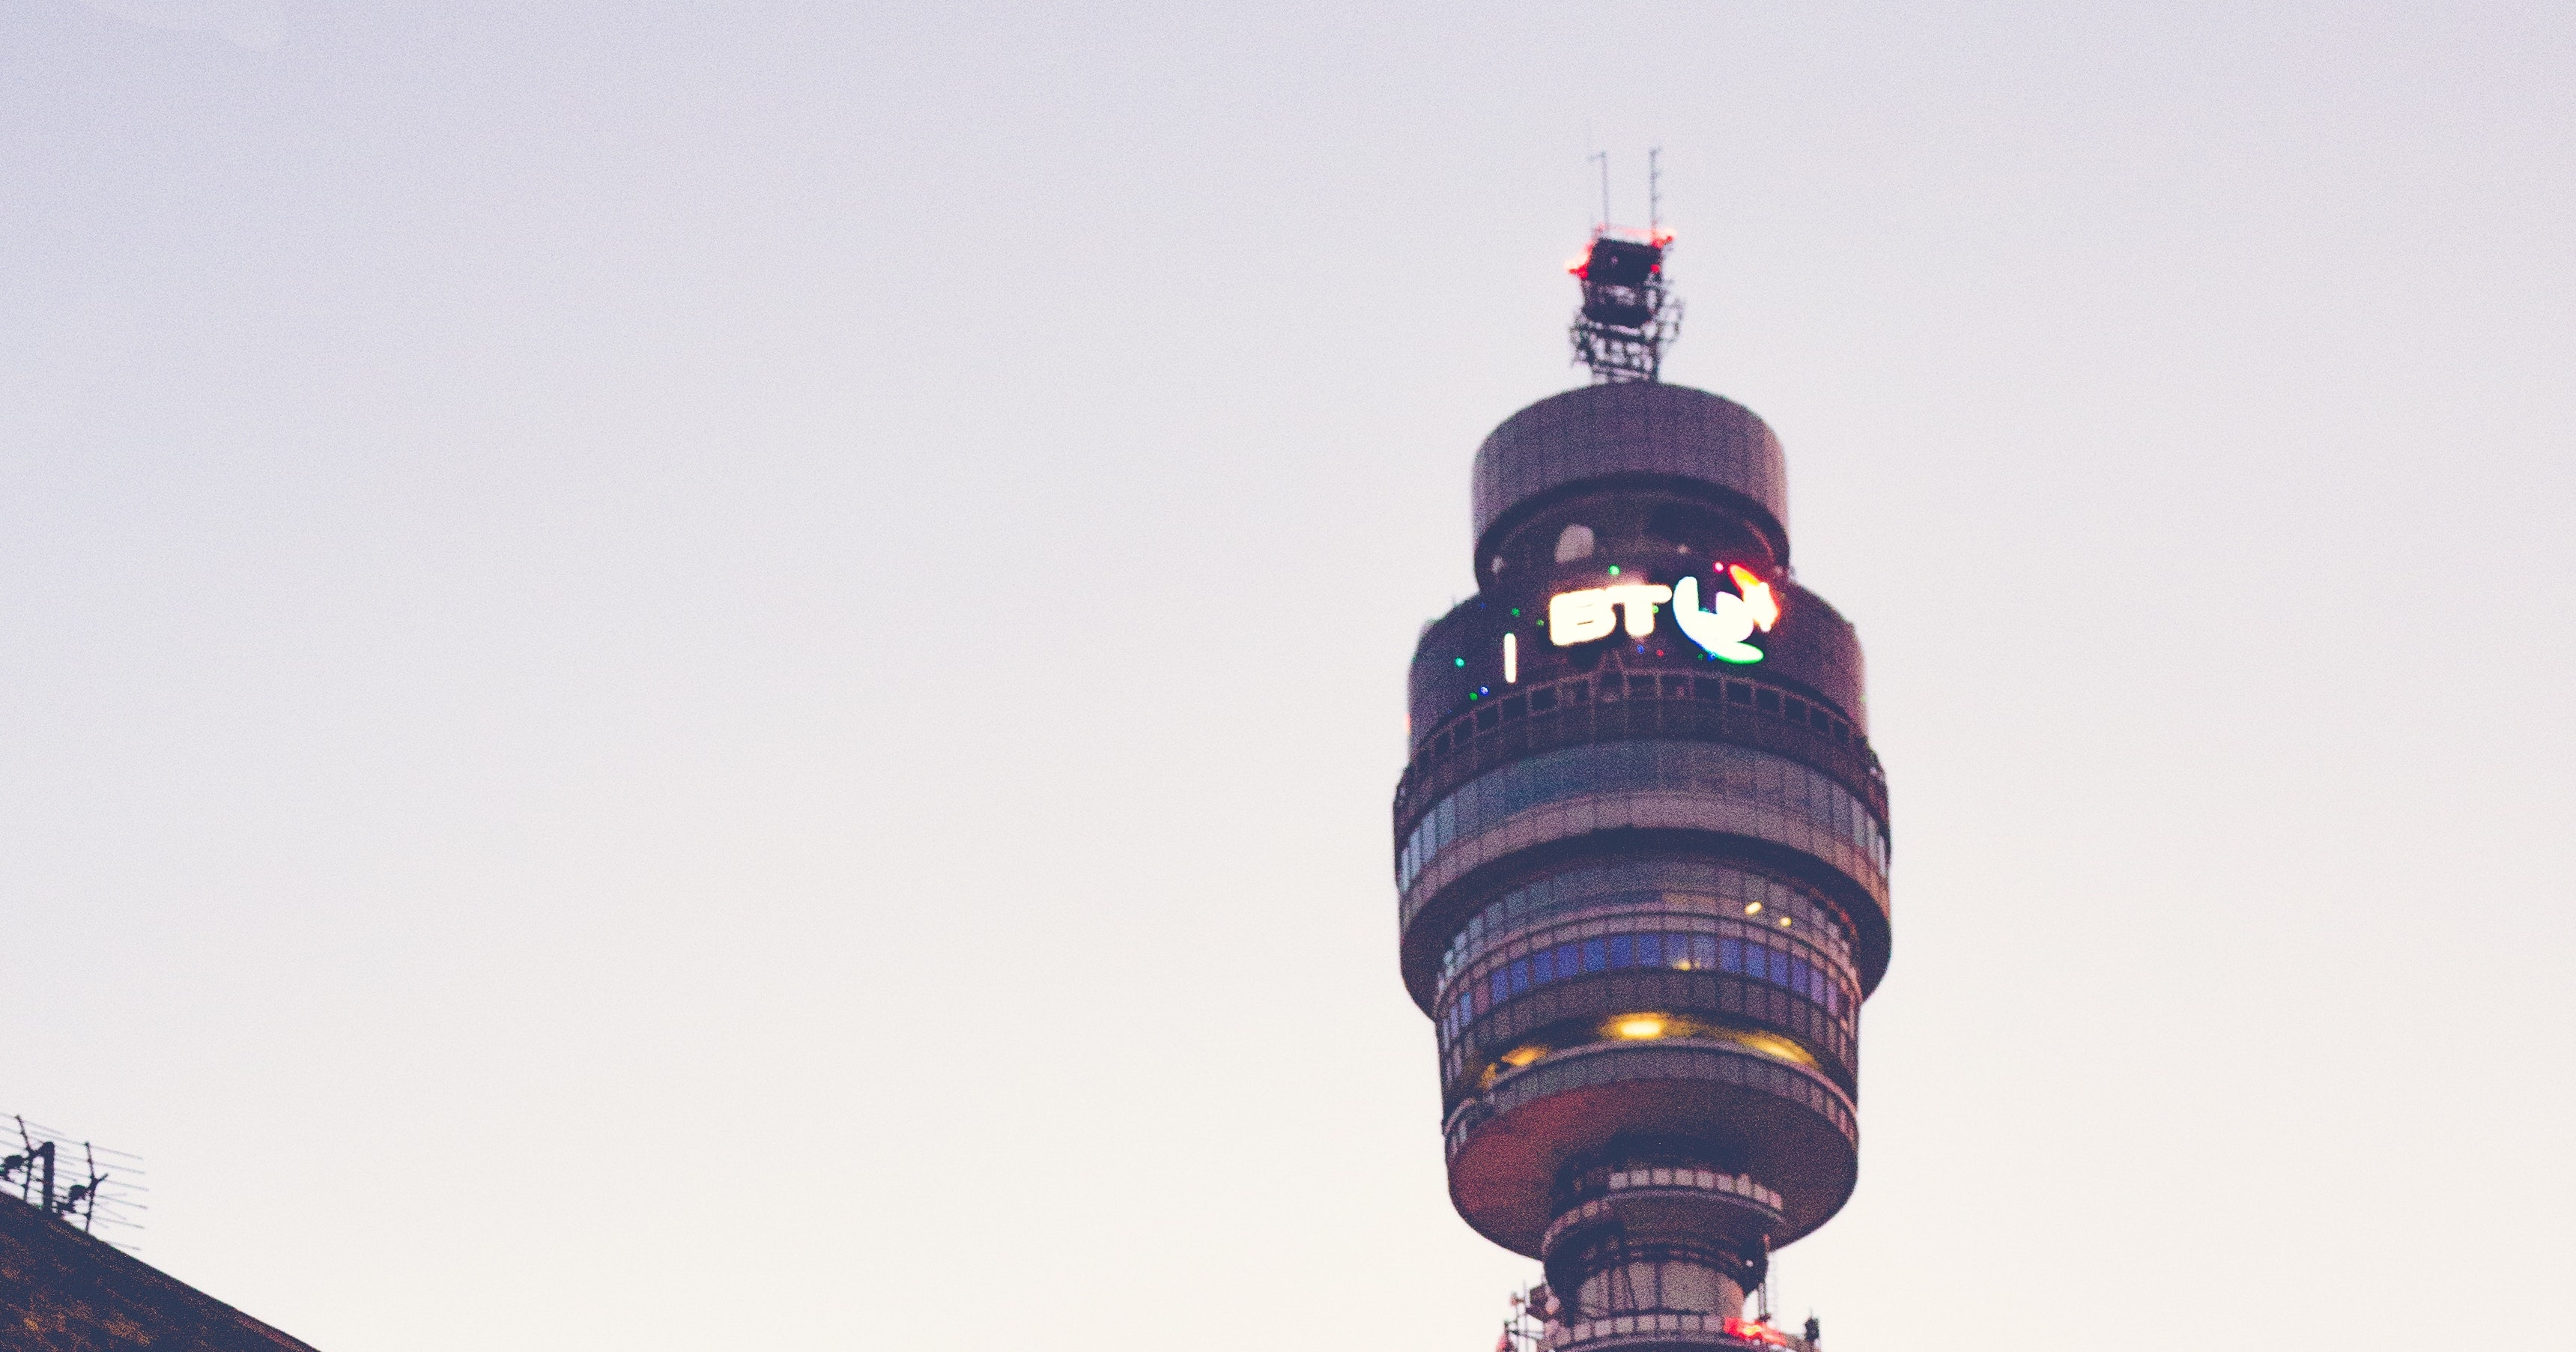 BT's London office sold for £210m as part of 'transformation'